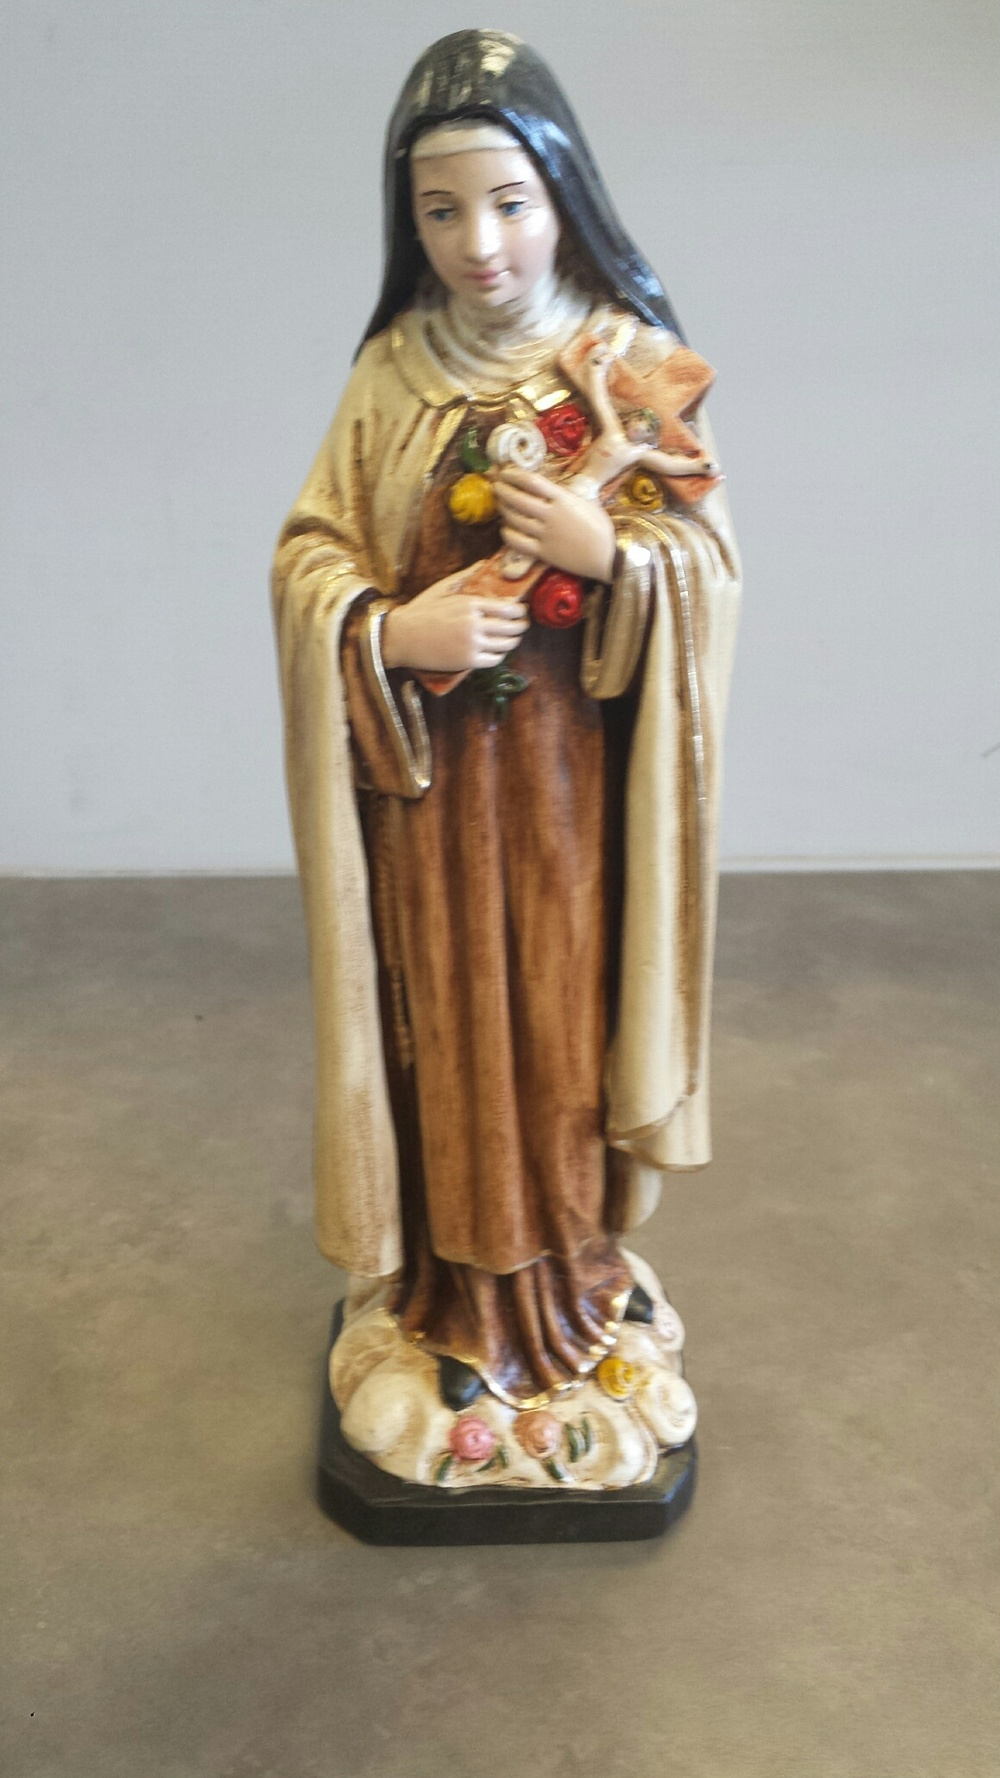 St. Therese $37.95